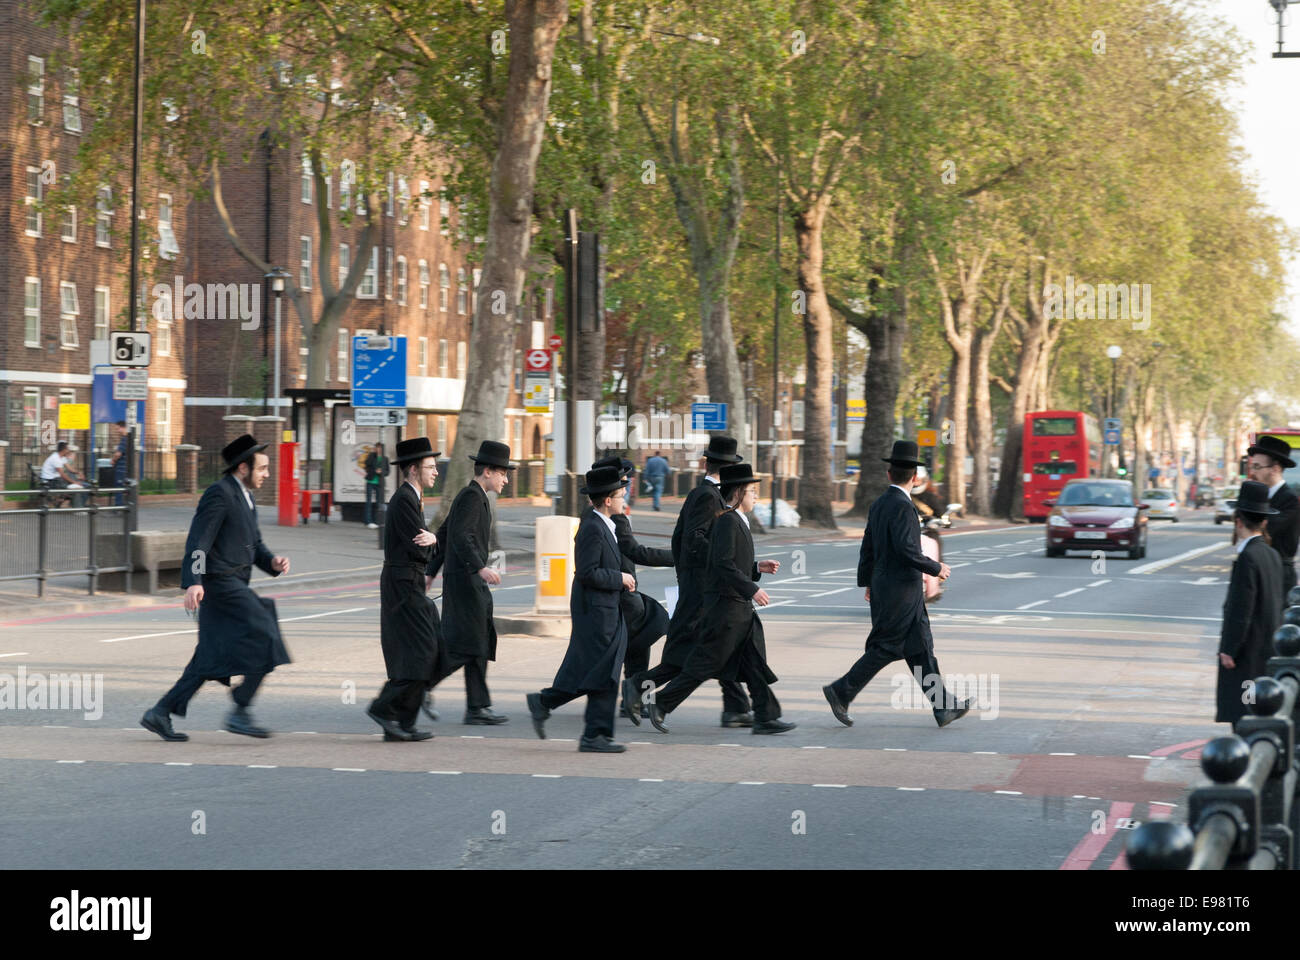 Orthodox Jews crossing the road in Stamford Hill, Hackney, London, England, UK - Stock Image